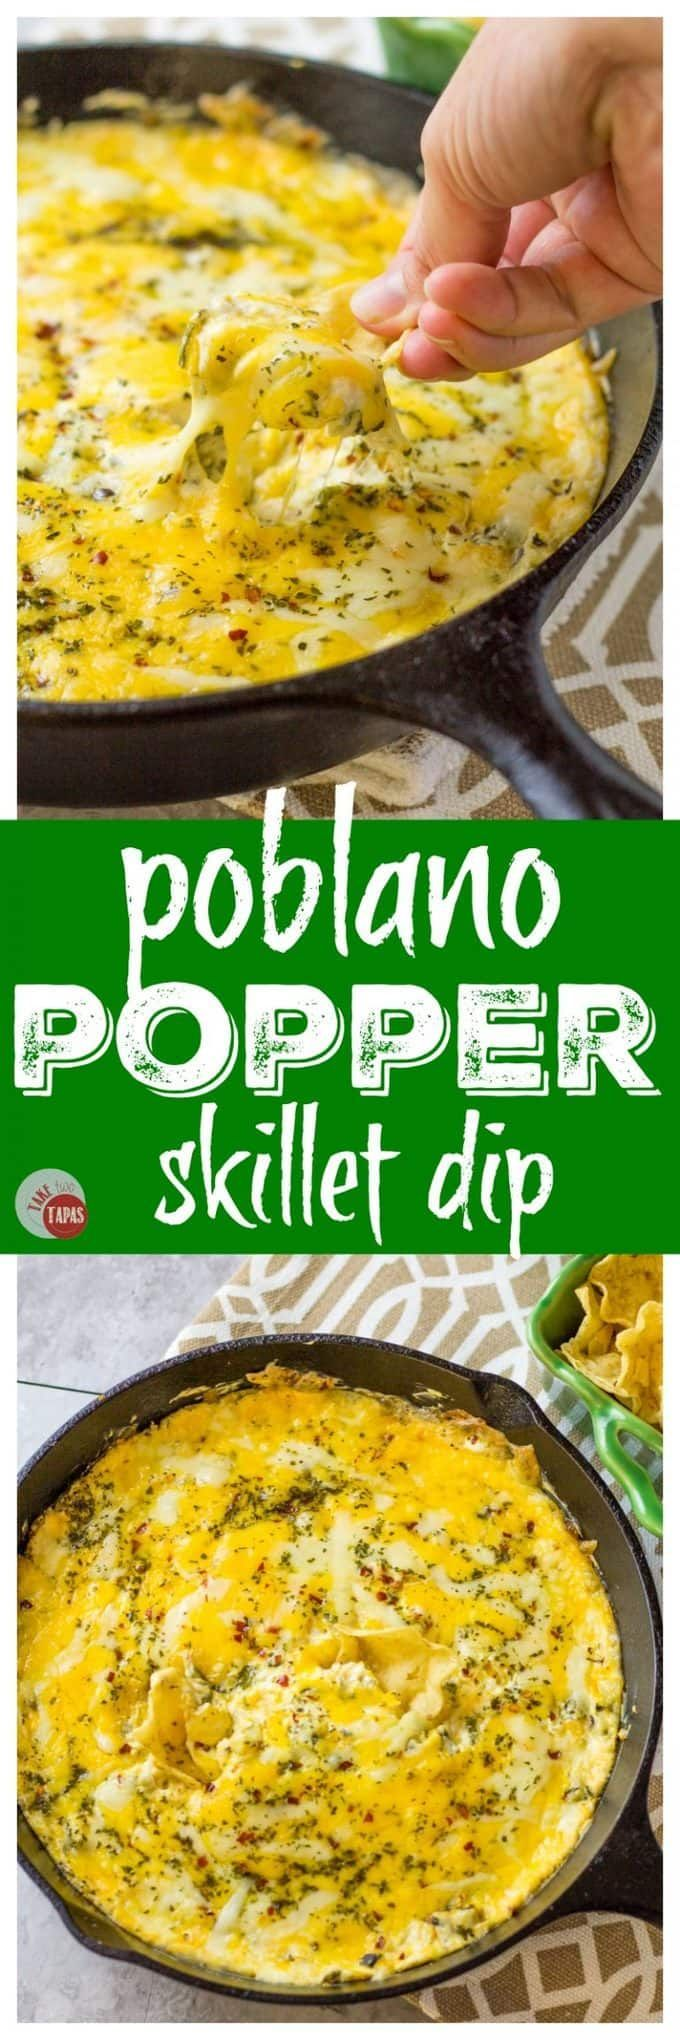 My Poblano Popper Skillet Dip is a new twist on the classic jalapeno popper dip with a smoky kick! Great appetizer recipe for your next party.